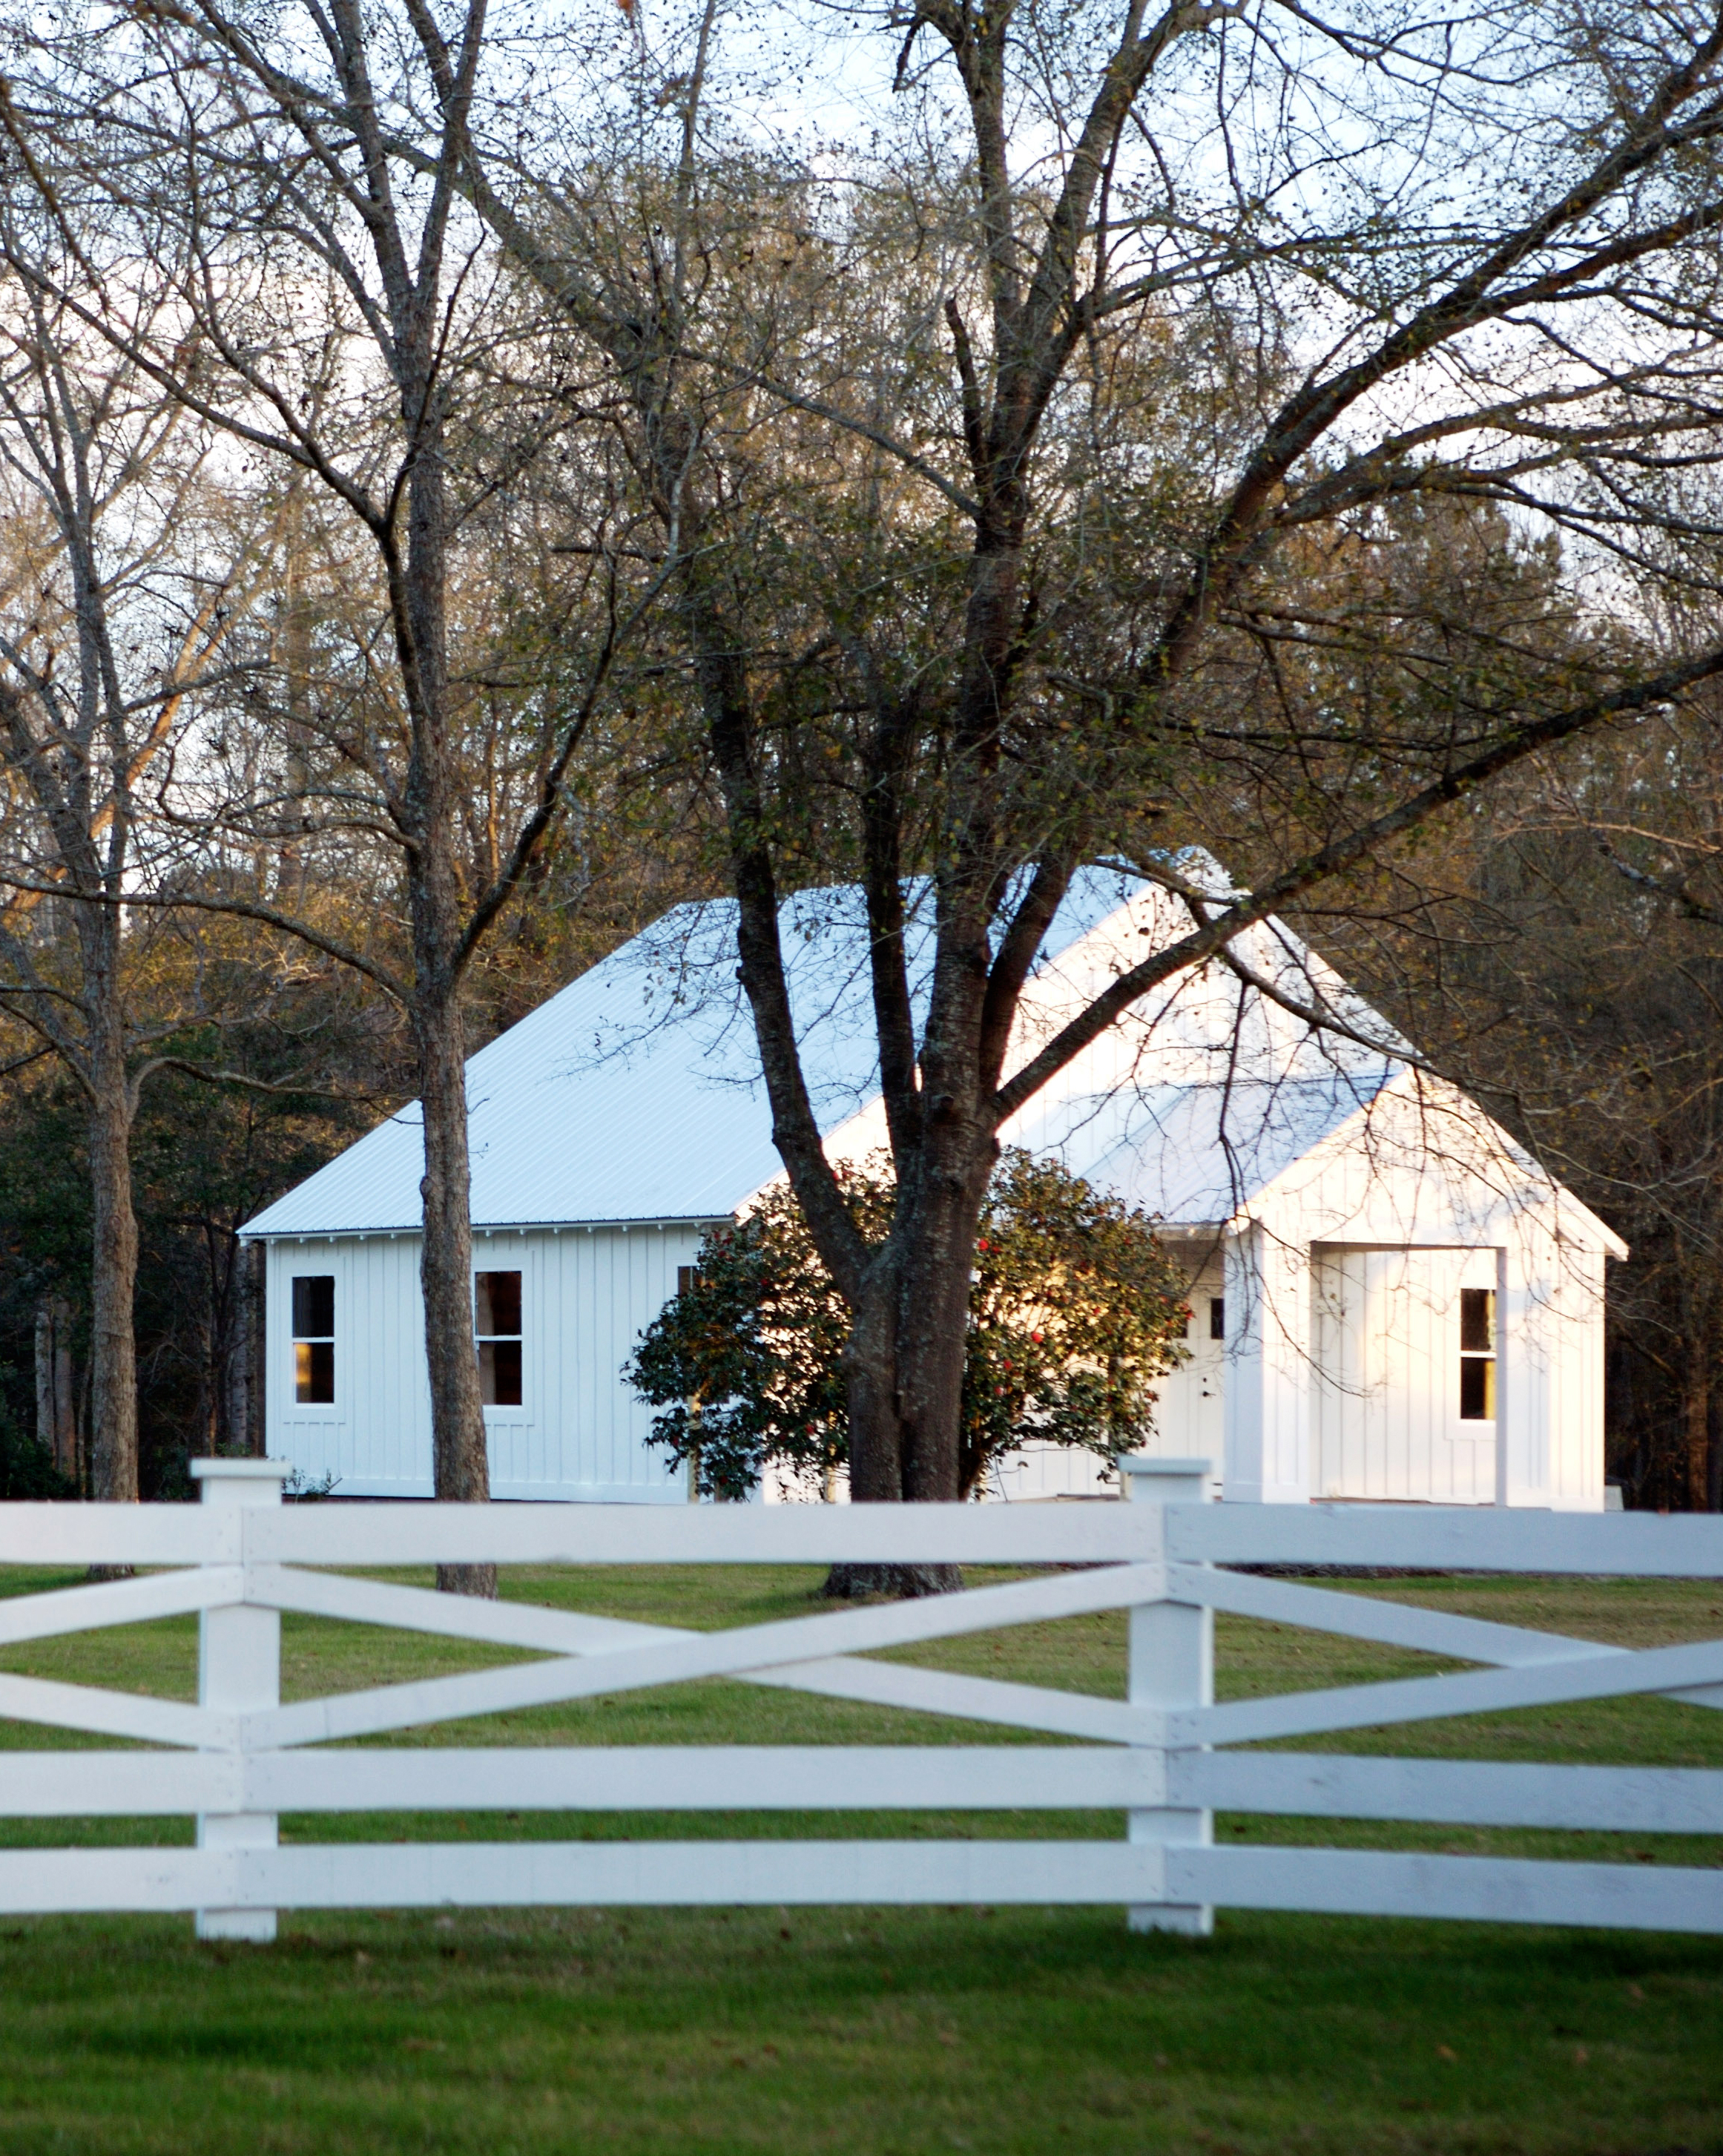 location-scout-wildberry-farm-atkinson-house-with-fence-1014.jpg